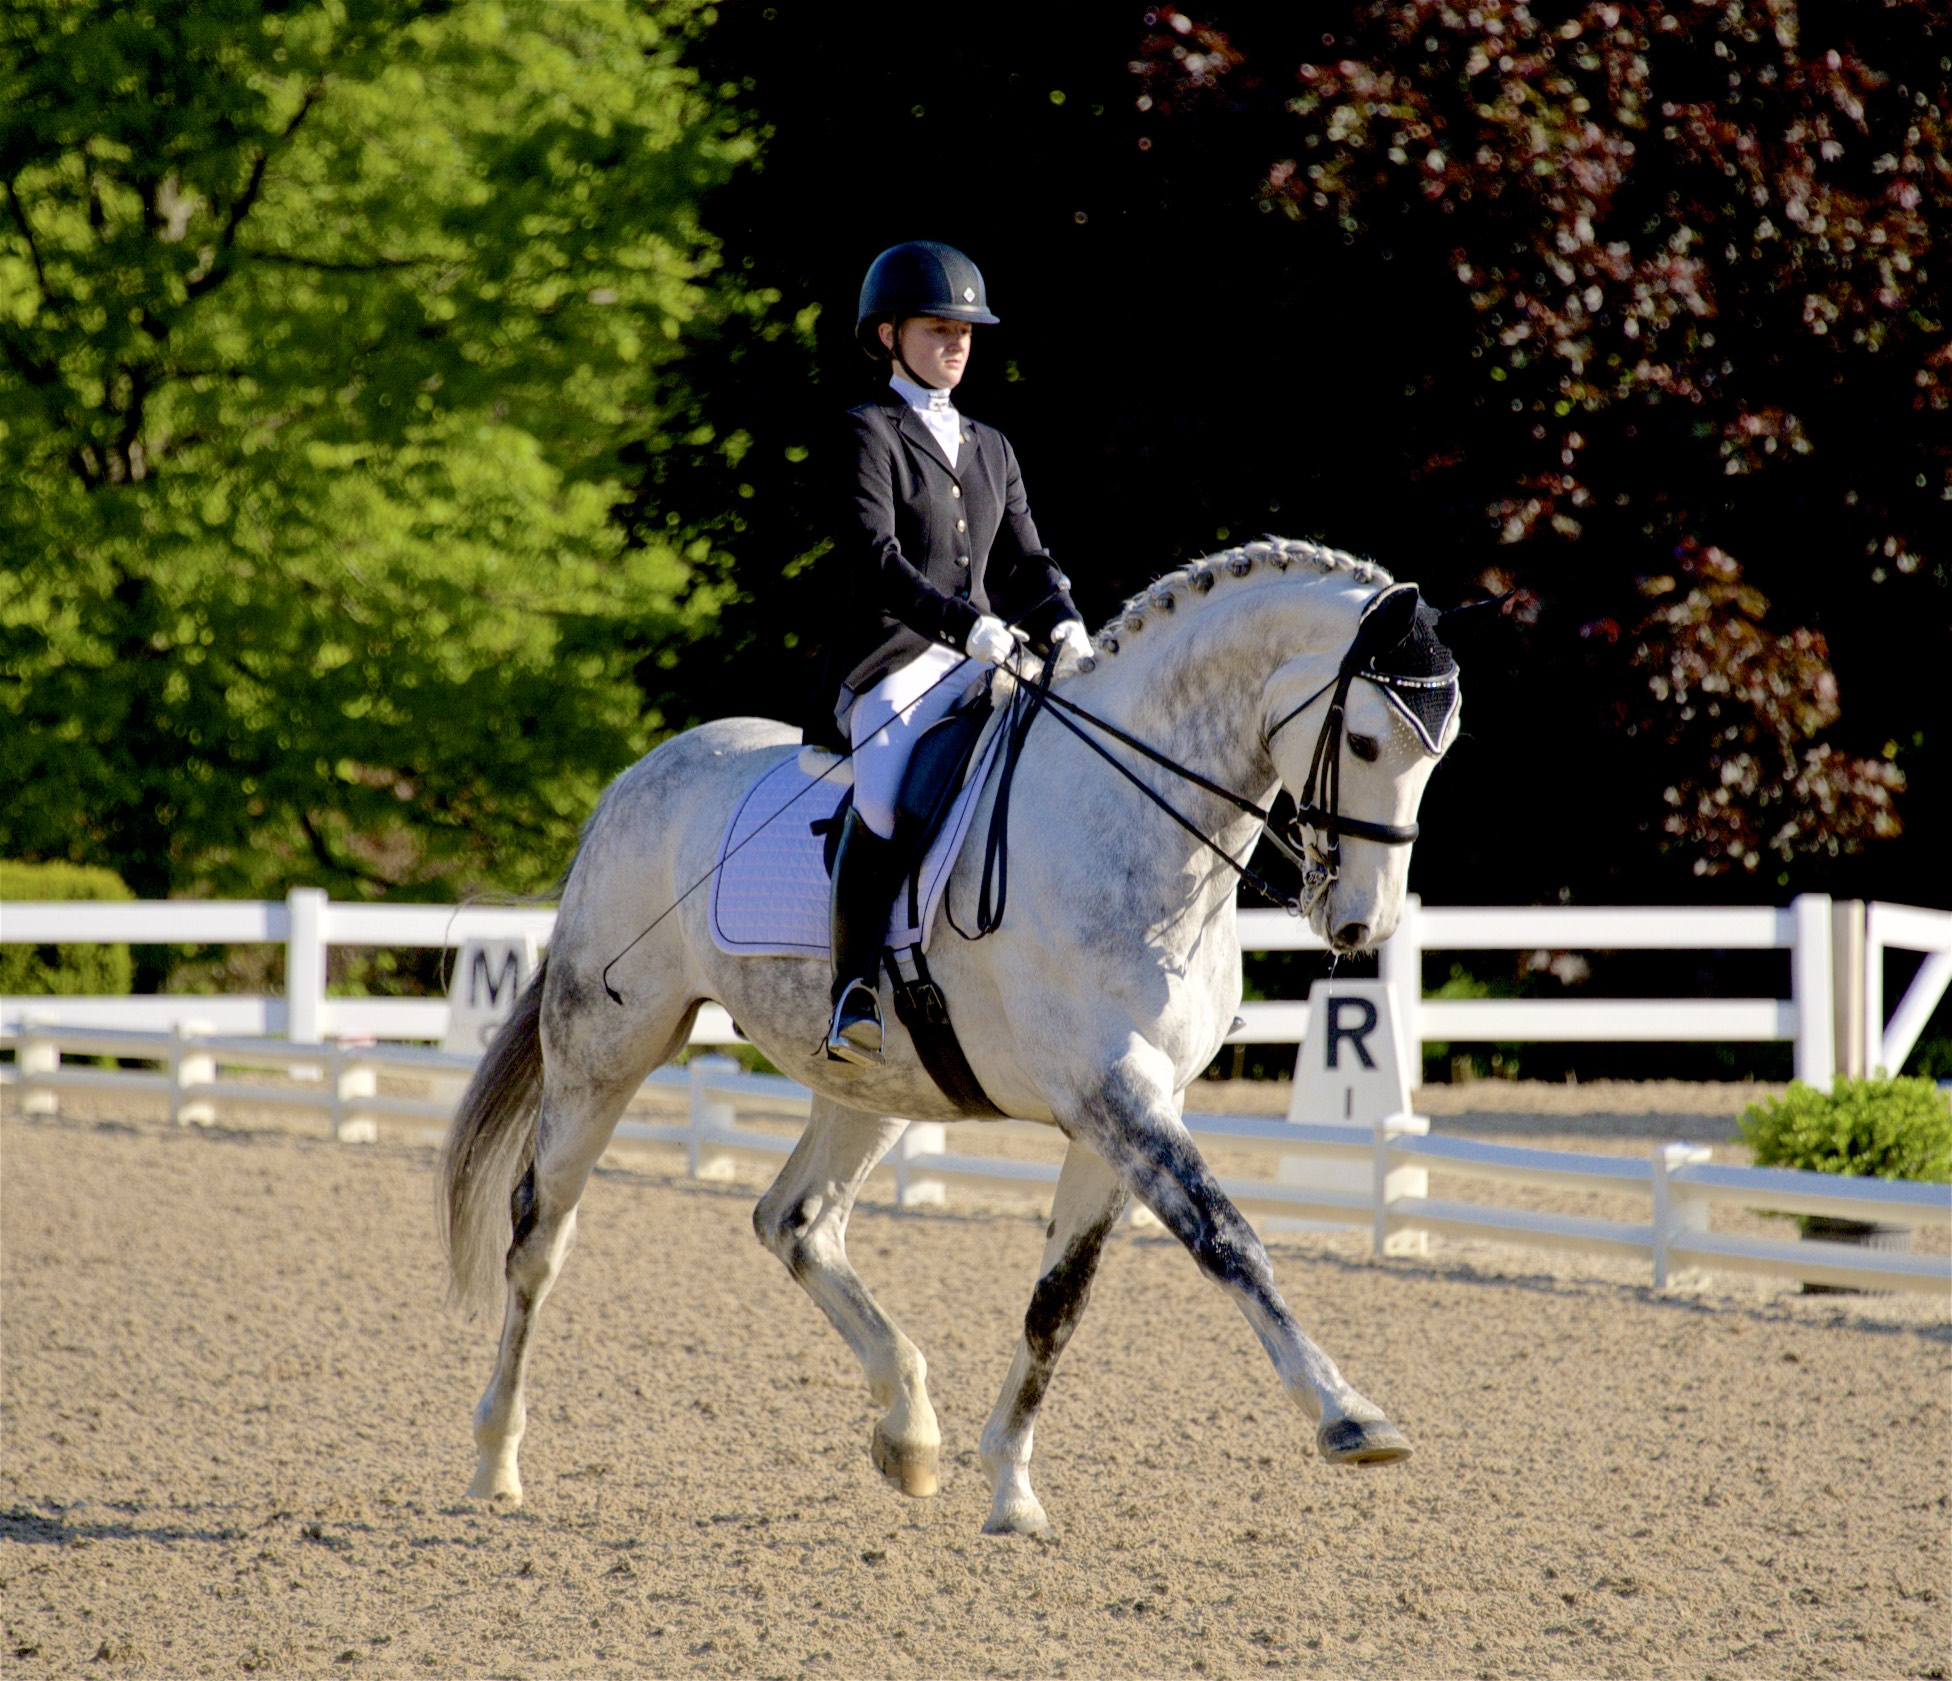 CLD member Jenna Upchurch is, as of time of publication, the top-ranked Junior rider in the country on Greystoke.